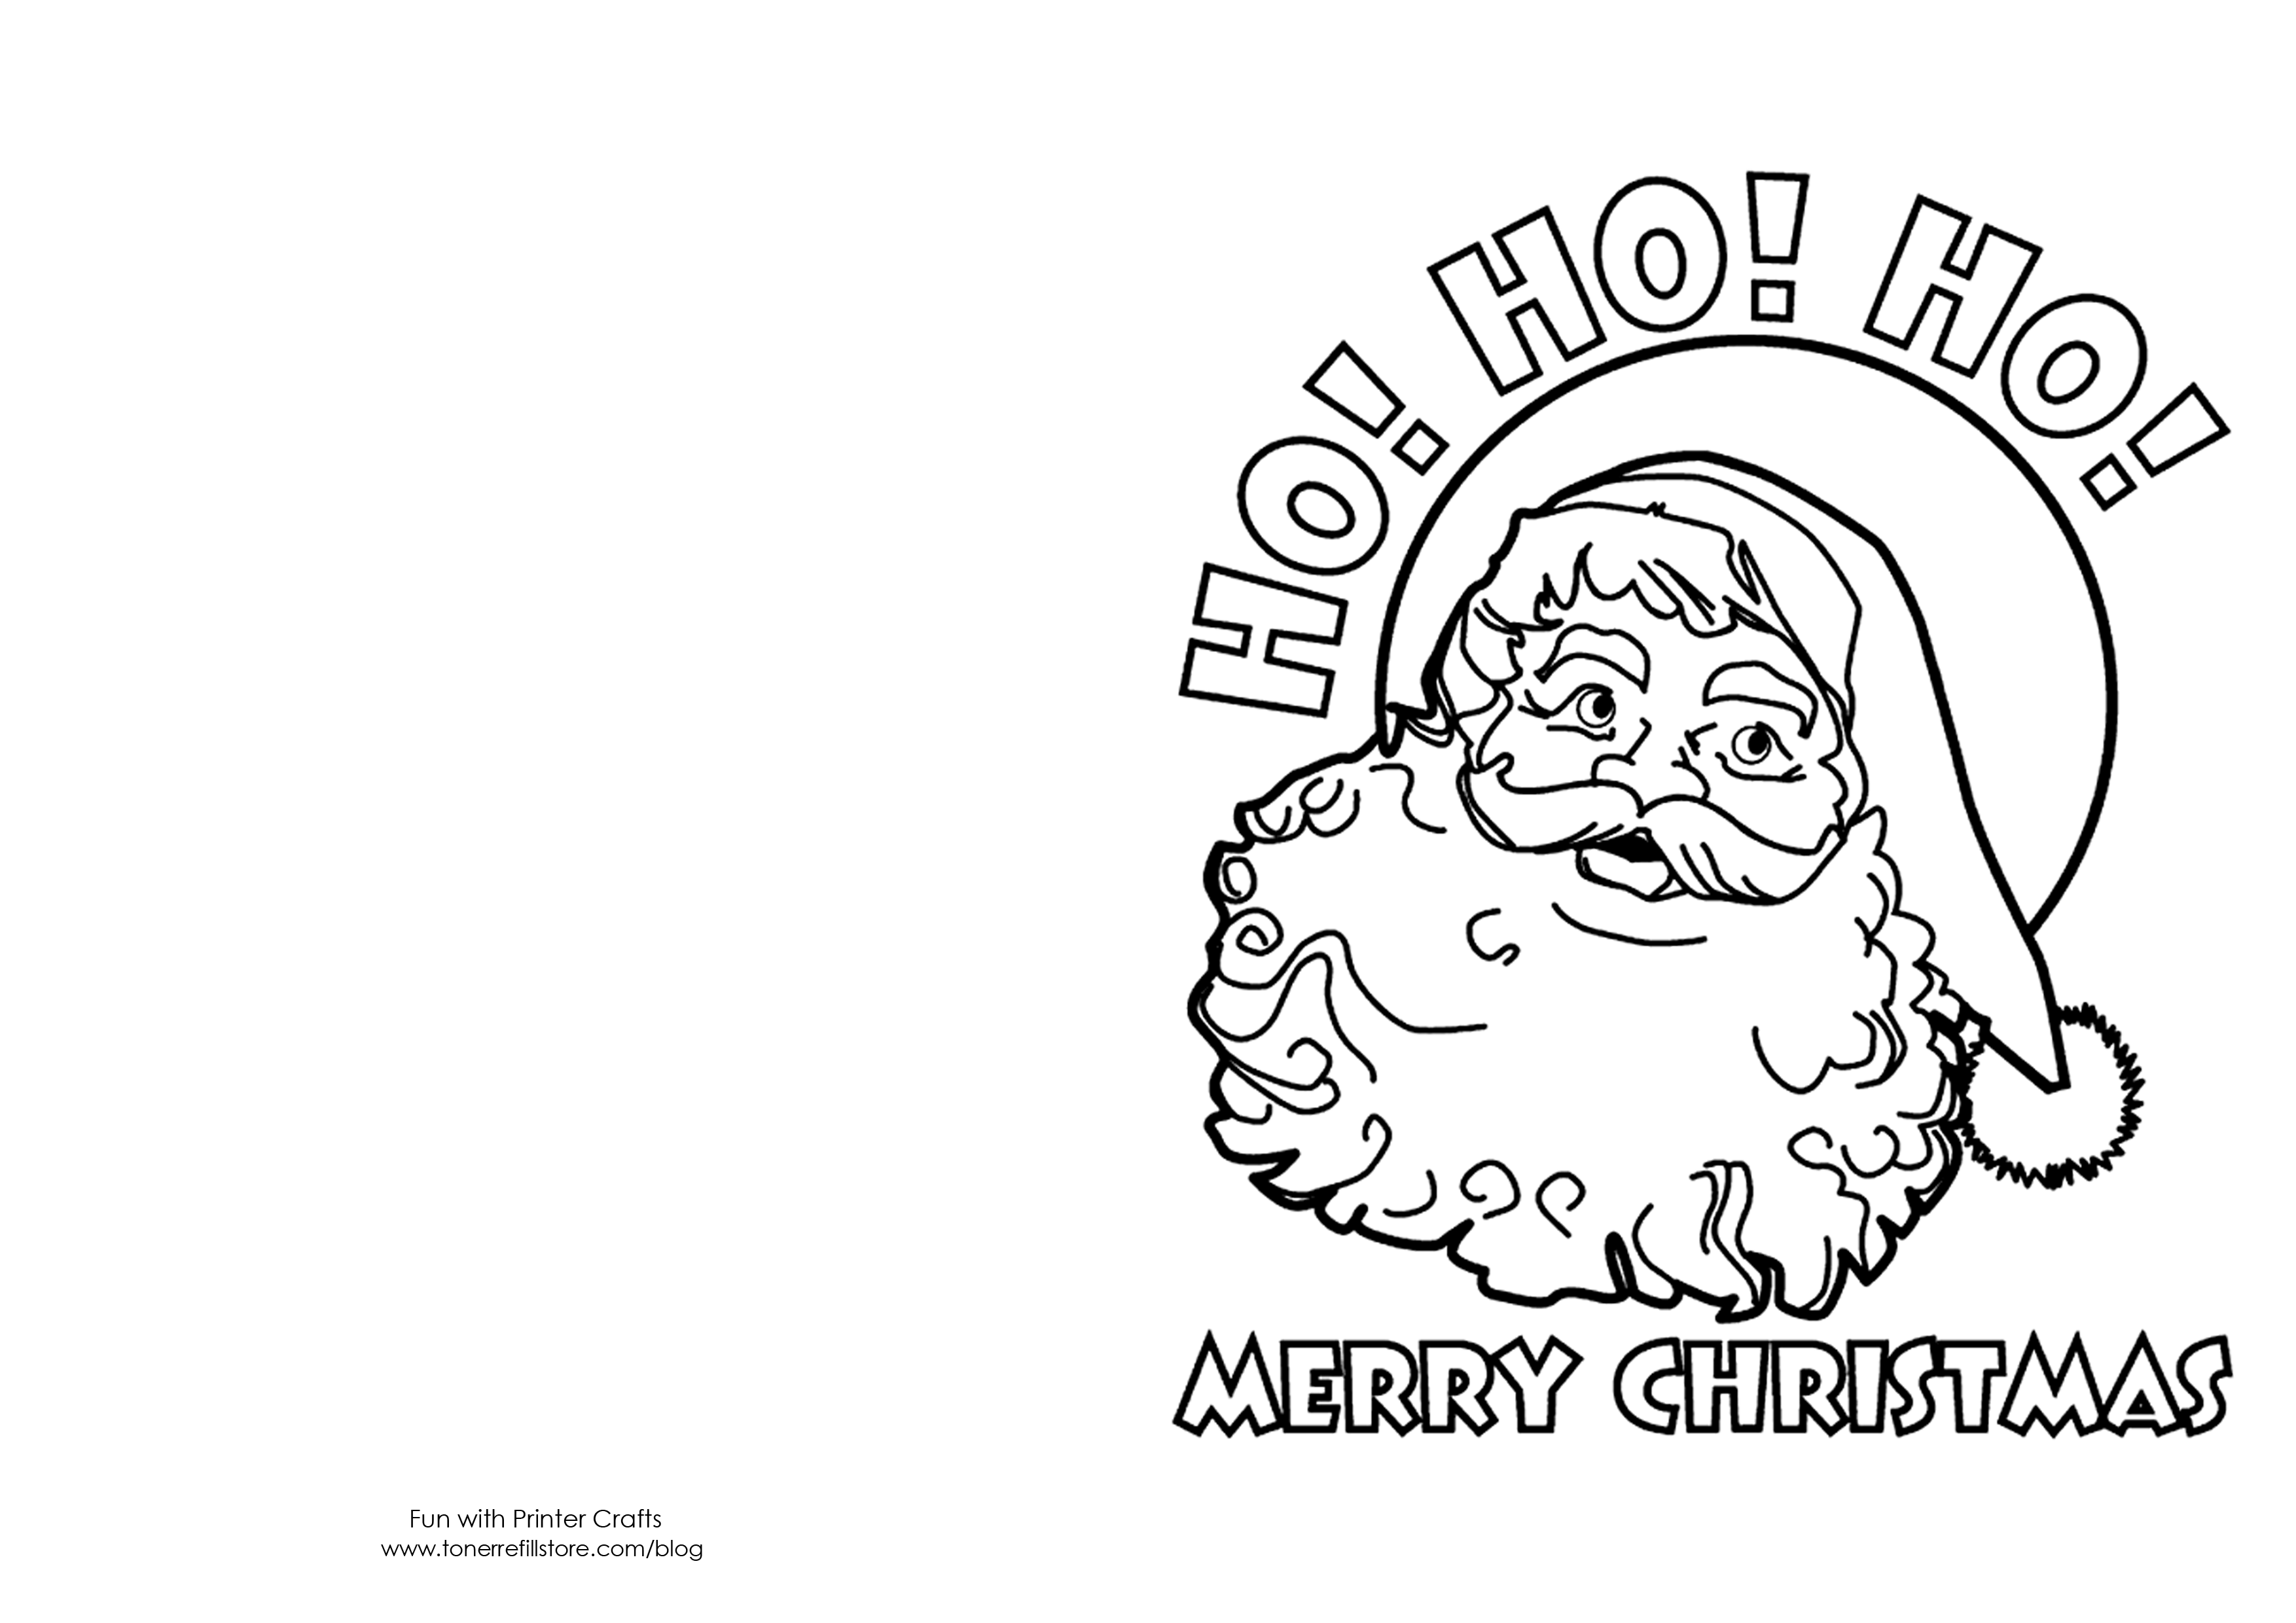 Christmas Coloring Card Printable With Cards Kids Crafts Pinterest